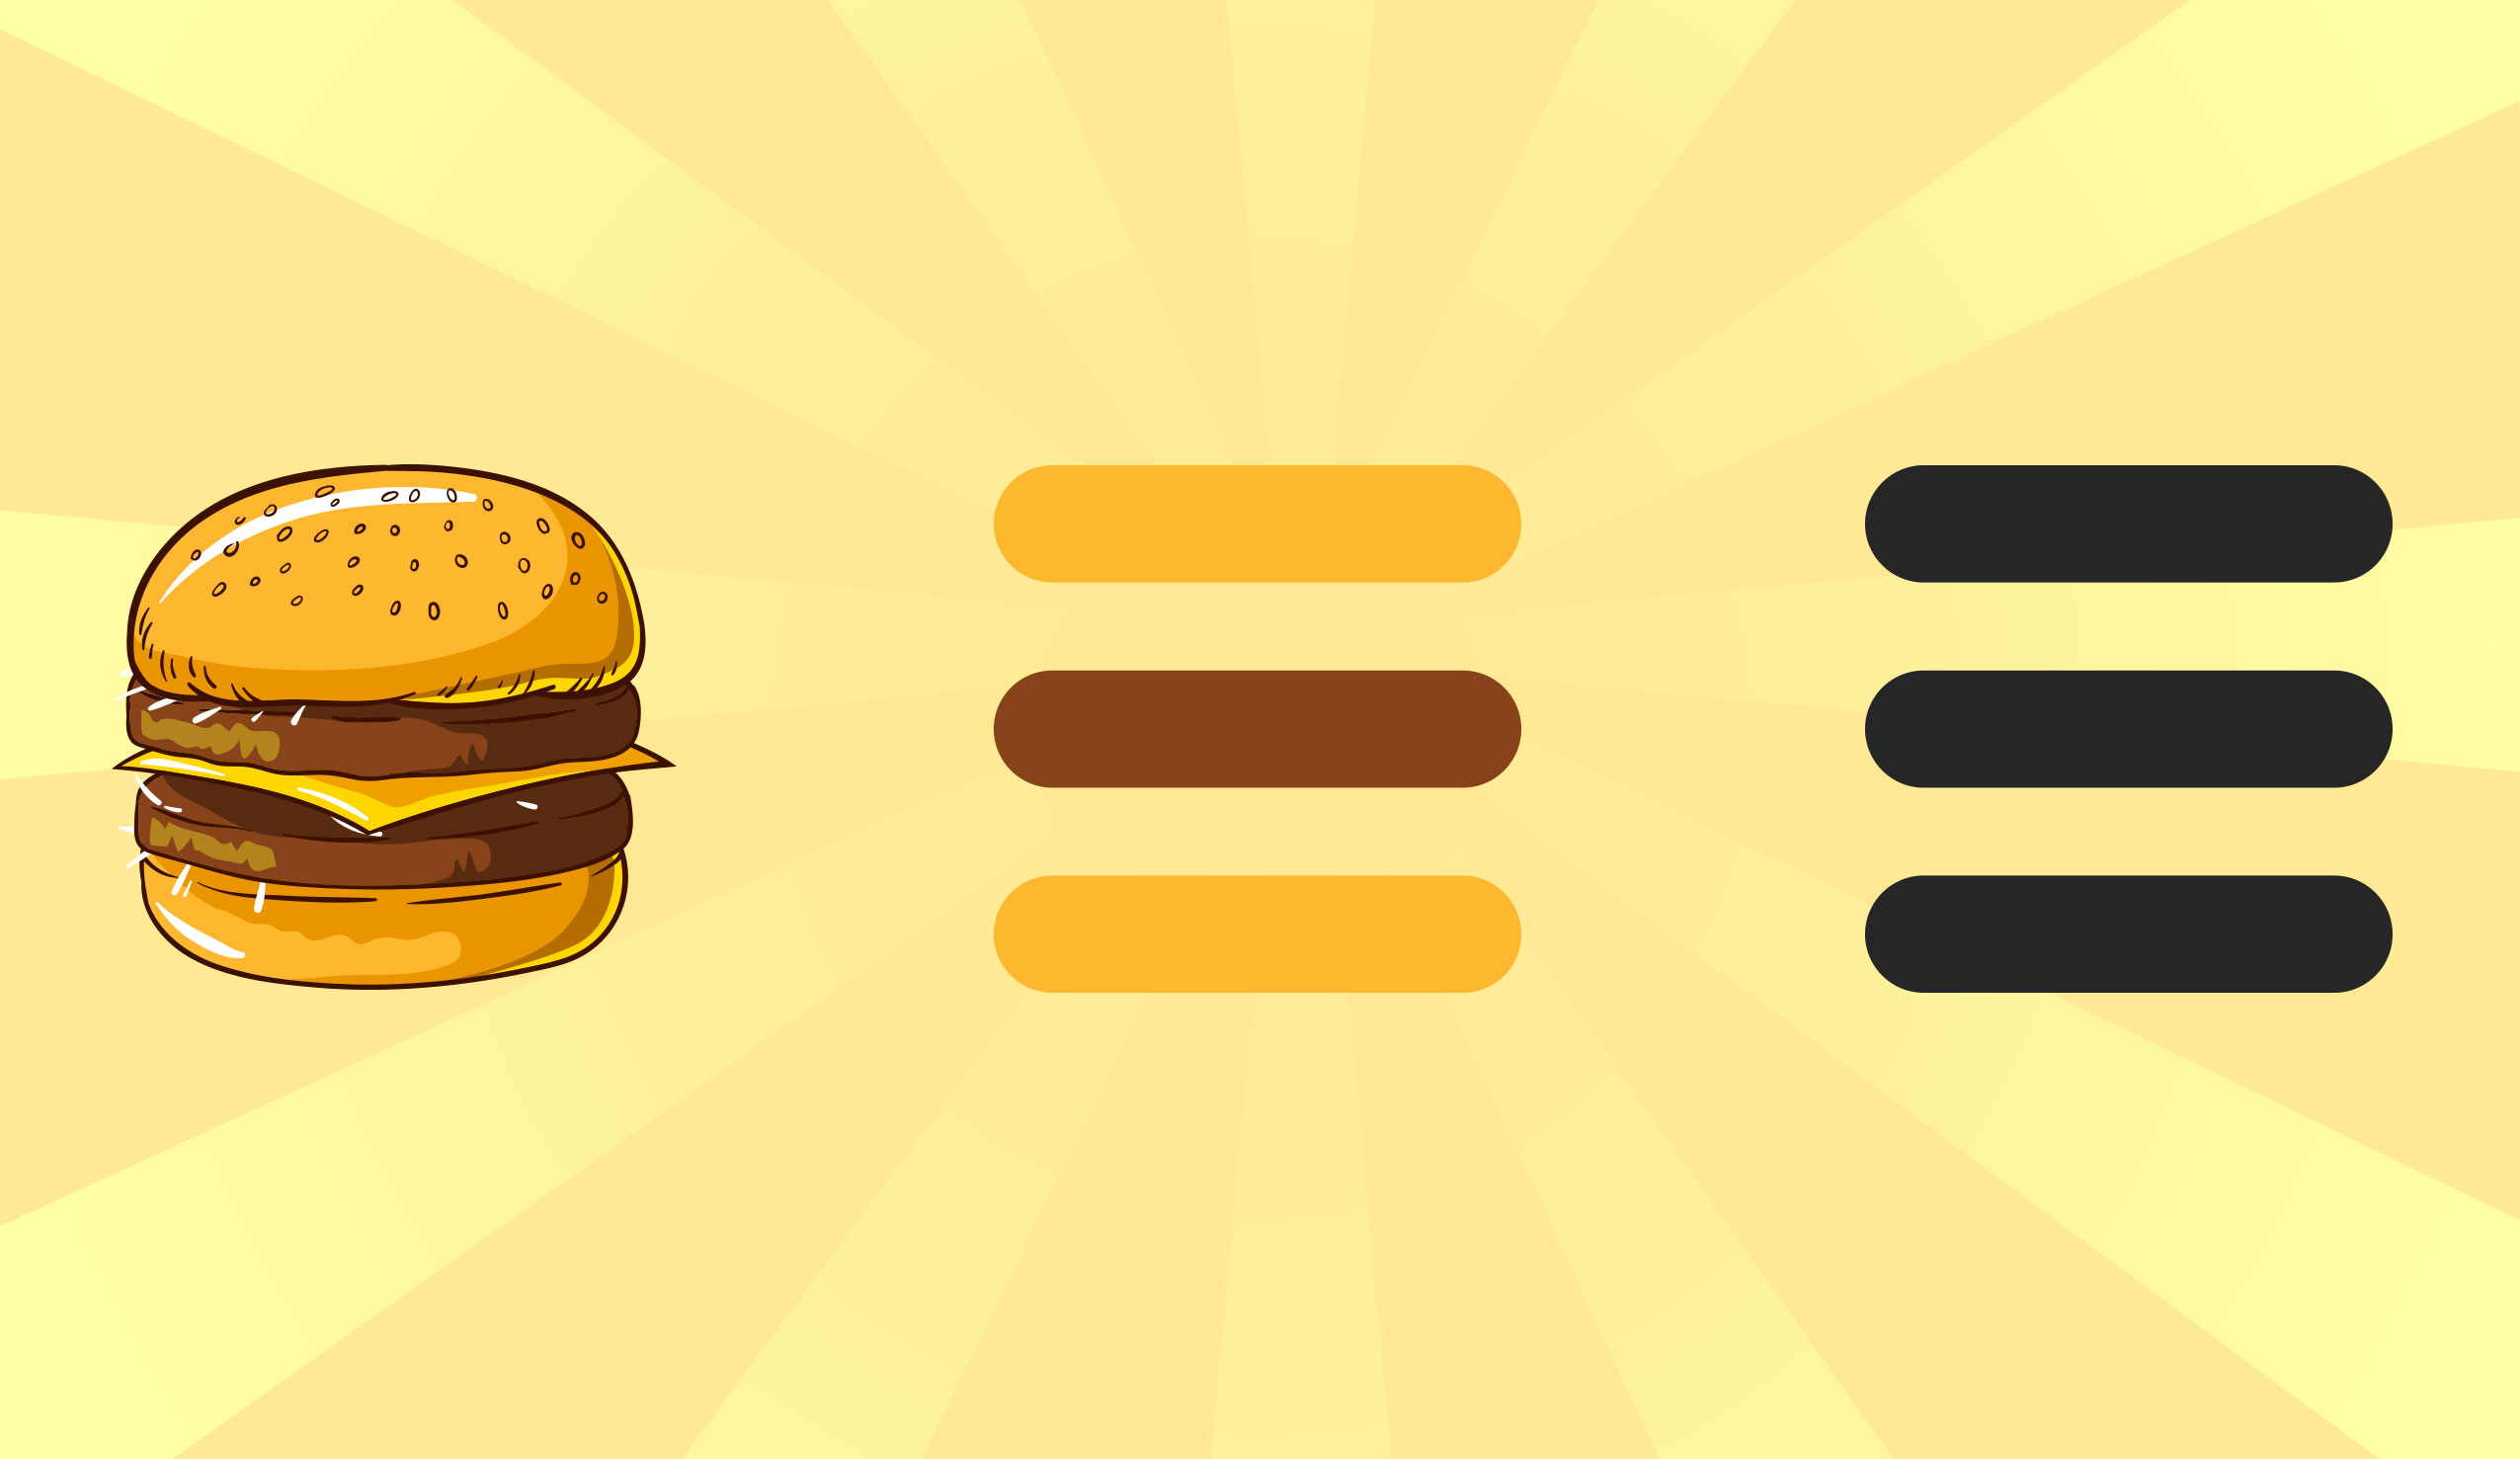 Hamburger menu: cos'è, quando è nato e come funziona